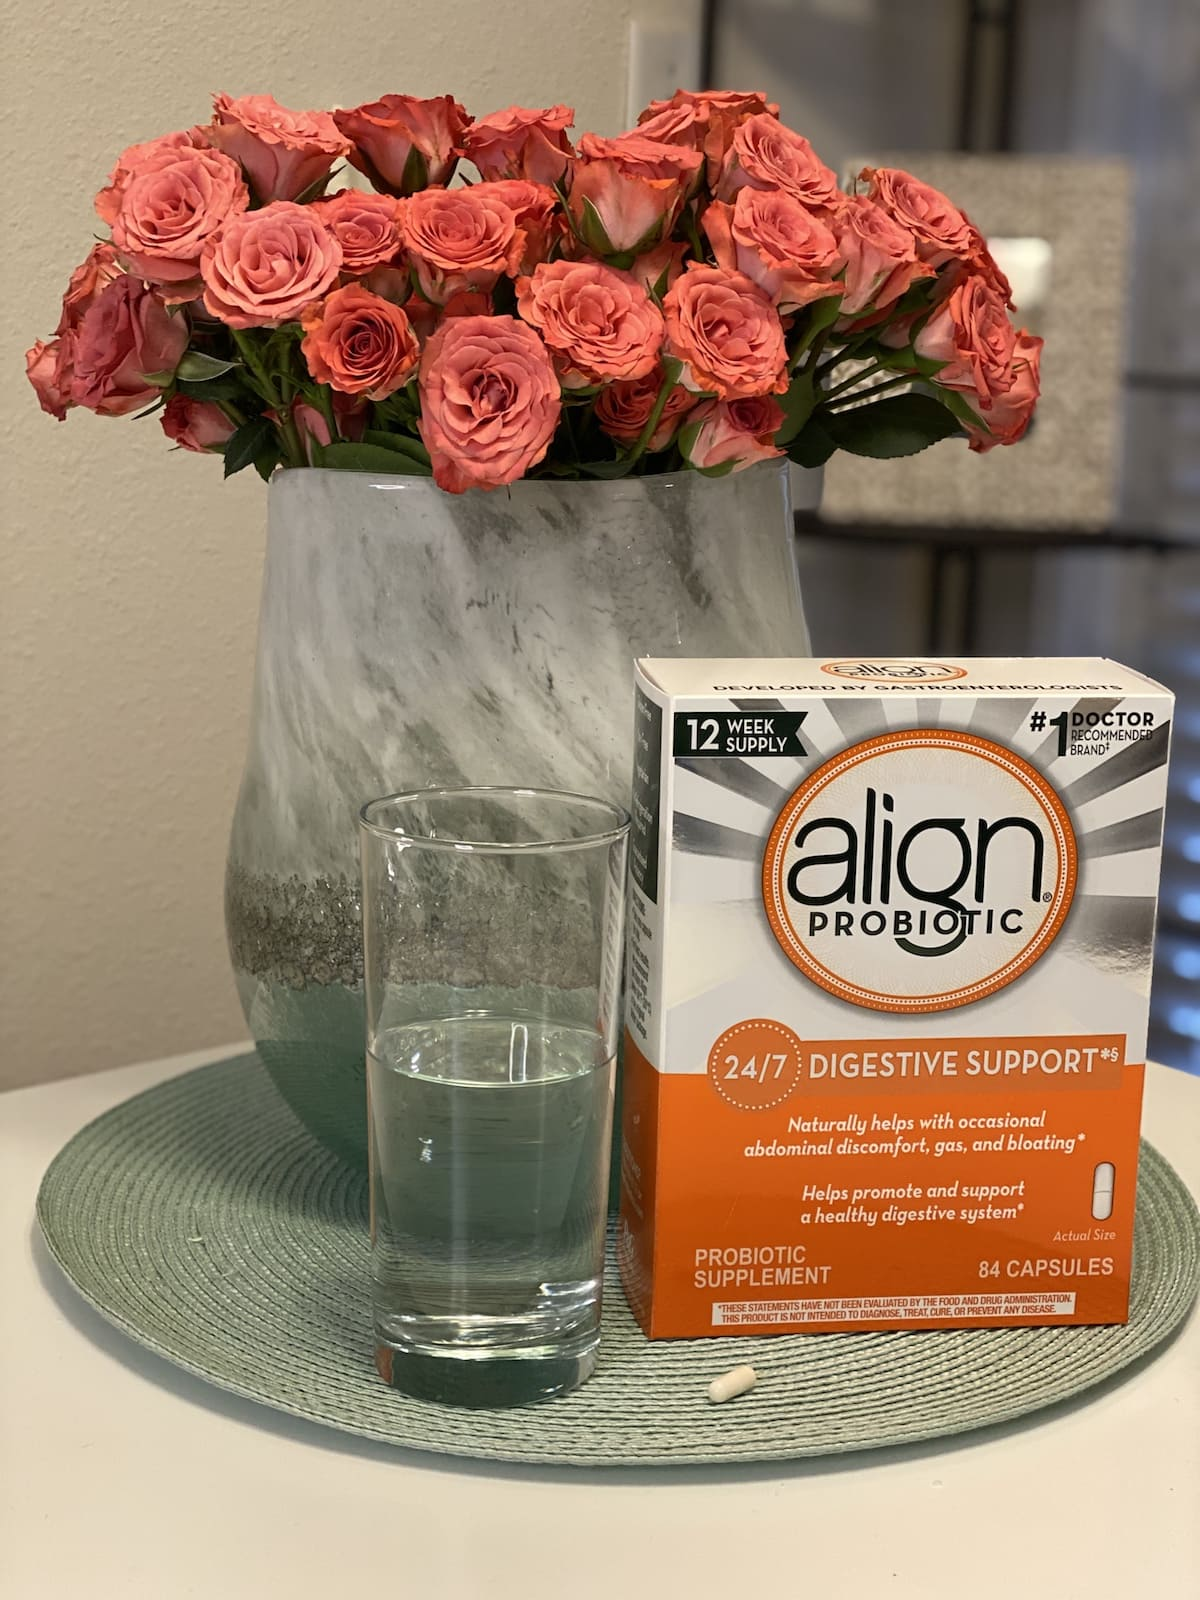 One Small Change: A Healthy Resolution You Can Make and Keep- Align Probiotics